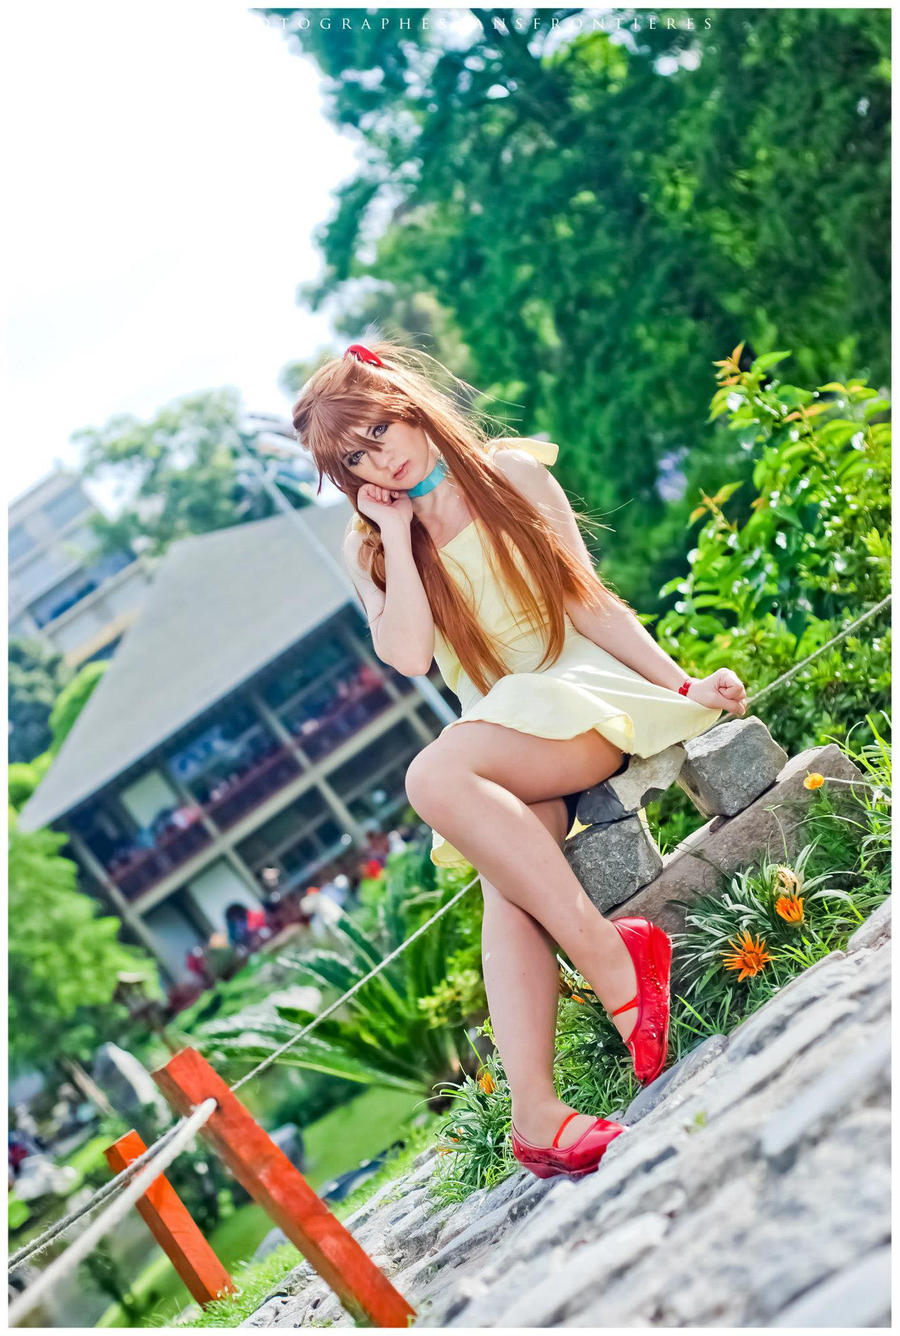 Asuka Langley Yellow dress by neliiell